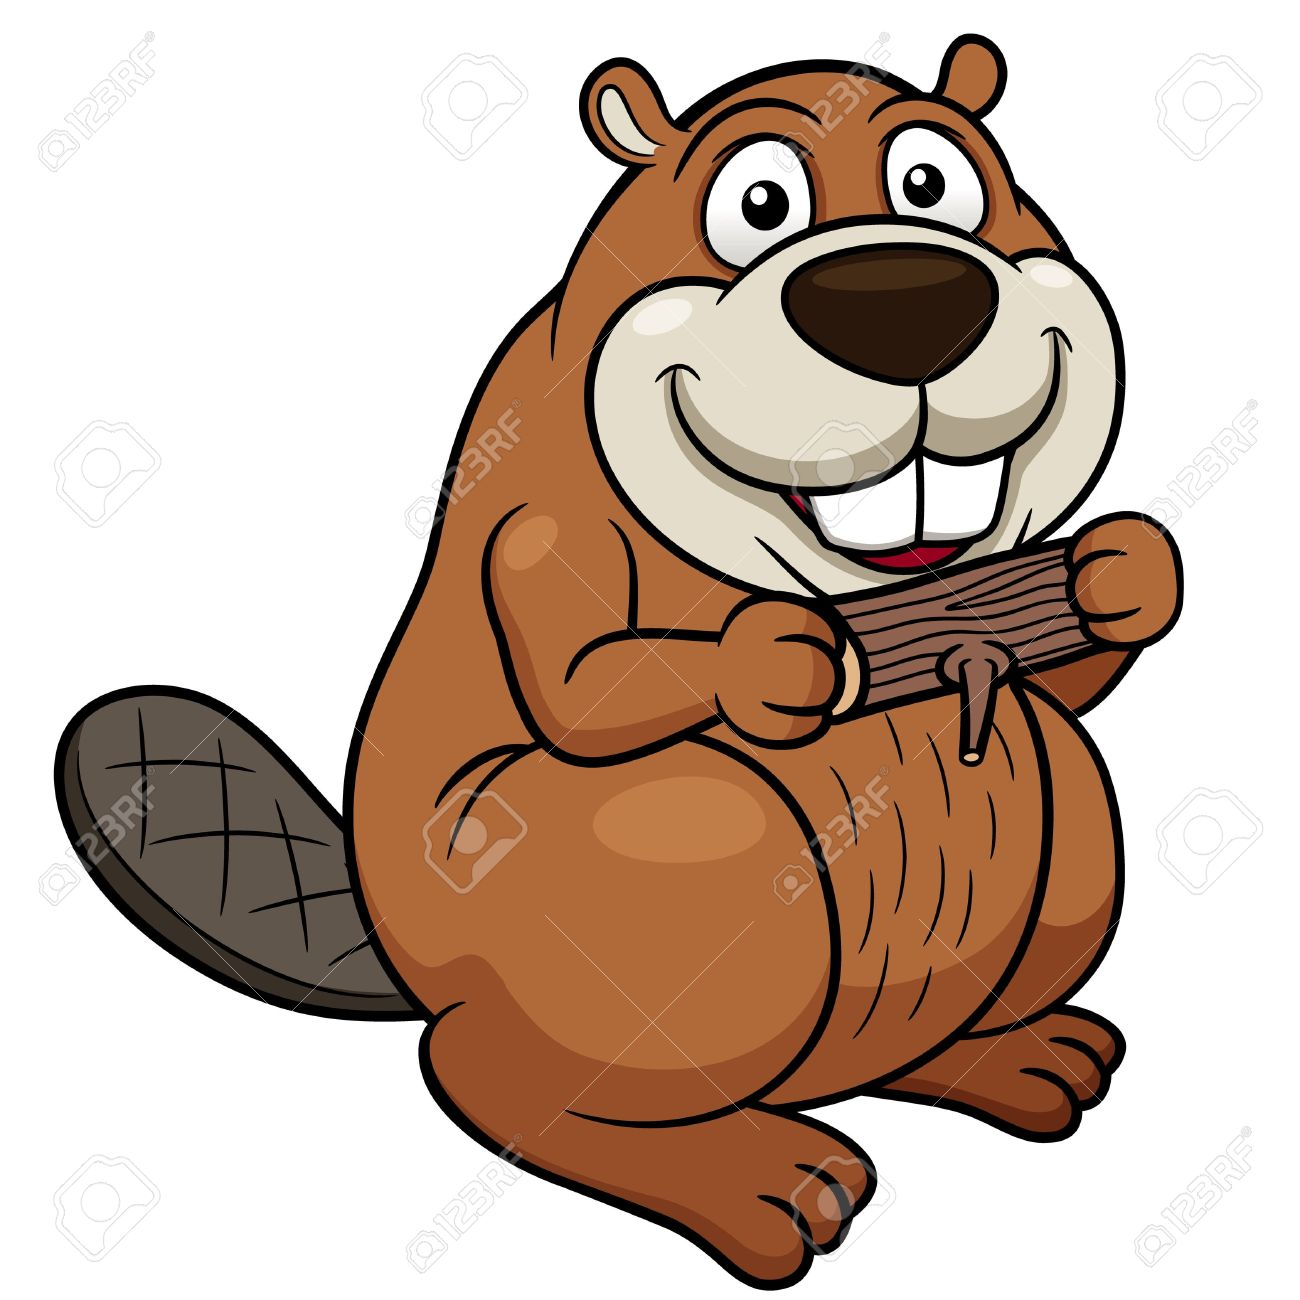 1300x1300 Beaver Isolated Stock Photos Amp Pictures. Royalty Free Beaver